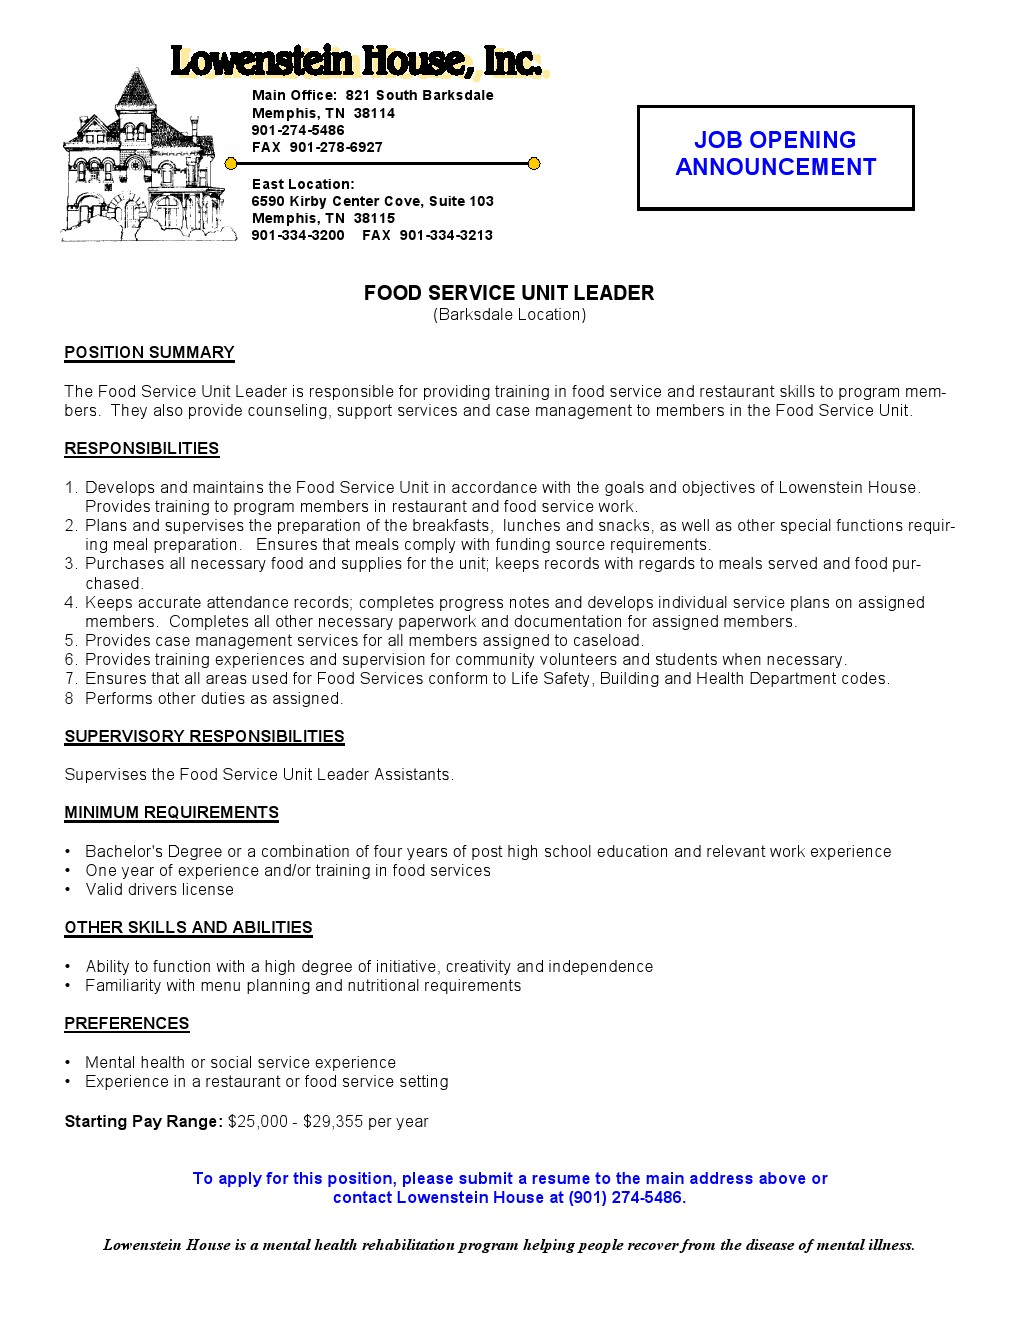 Job Duties For Server Resume How To Write The Summary Part Of A  Server Job Duties For Resume